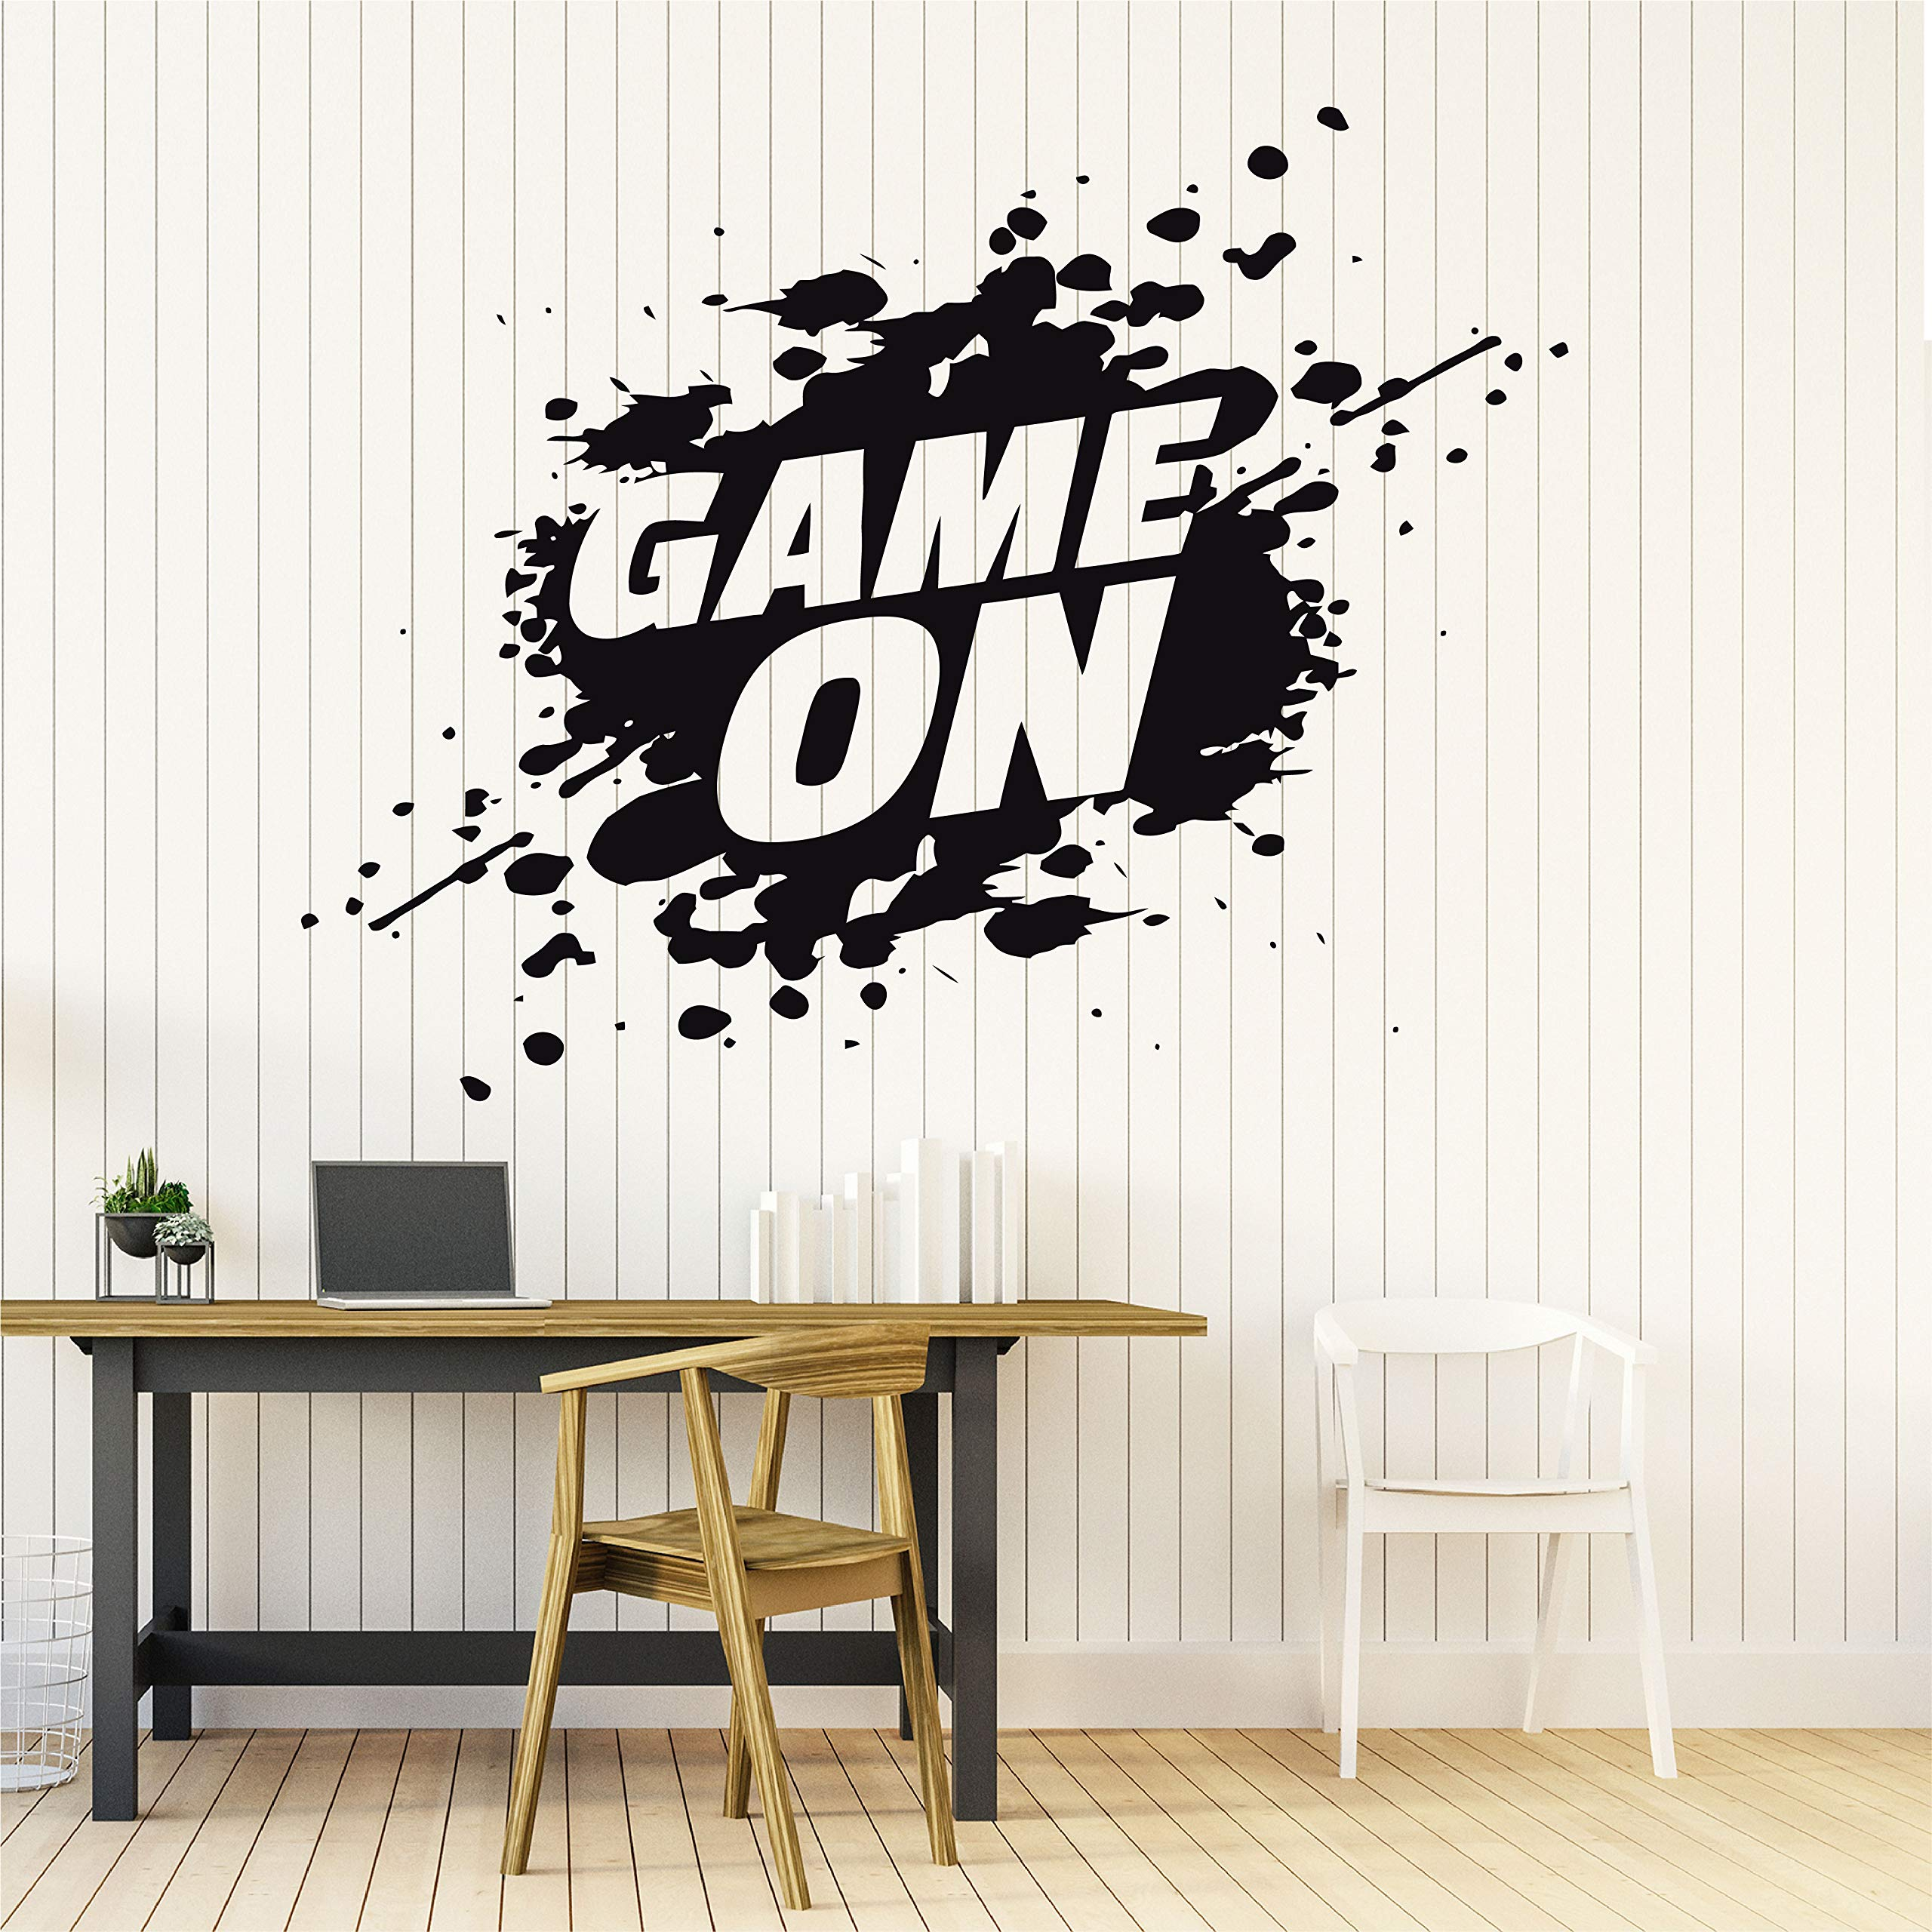 Amazon Com 22 X 28 In Gamer Wall Decor For Boys Room Gaming Decals Video Game Vinyl Stickers Teen Bedroom Art Decorations Computer Retro Controller Poster Sign Quotes Eat